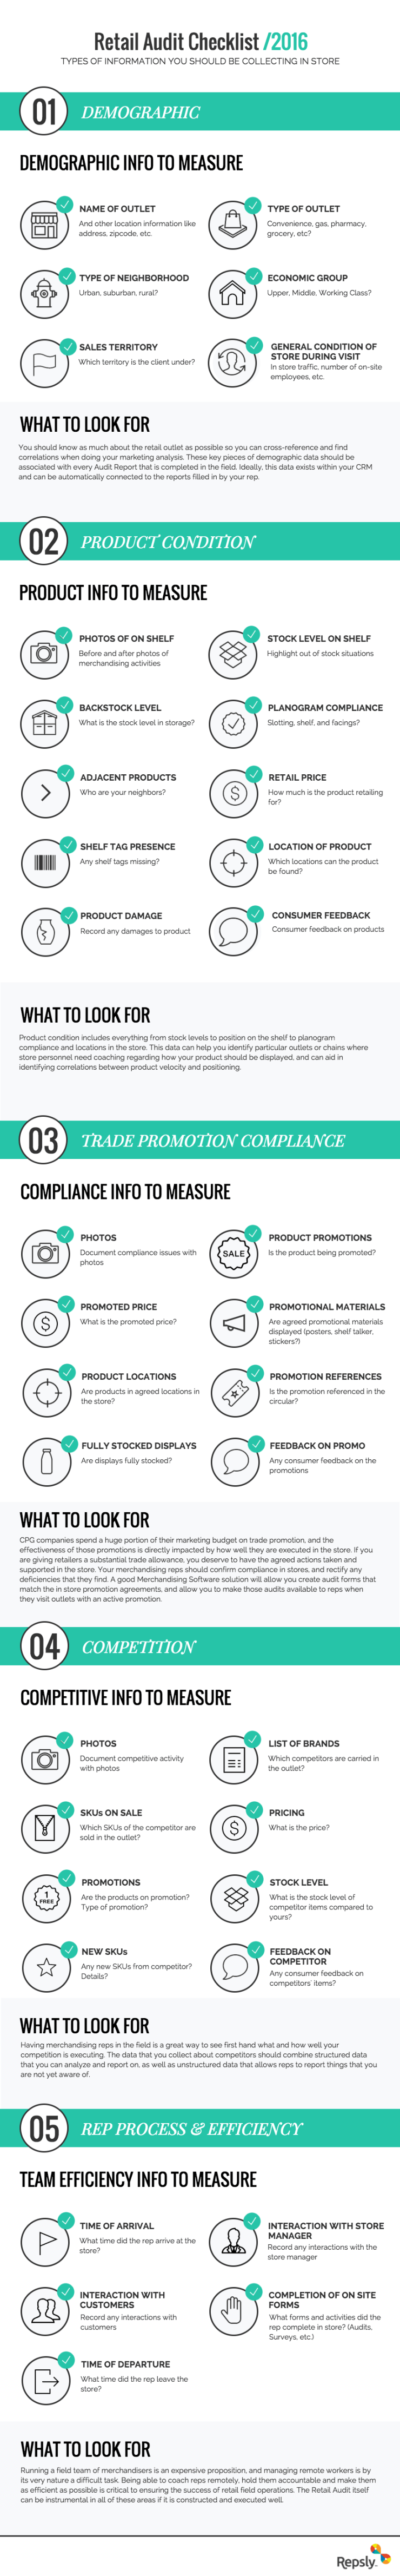 Retail Audit Checklist Infographic